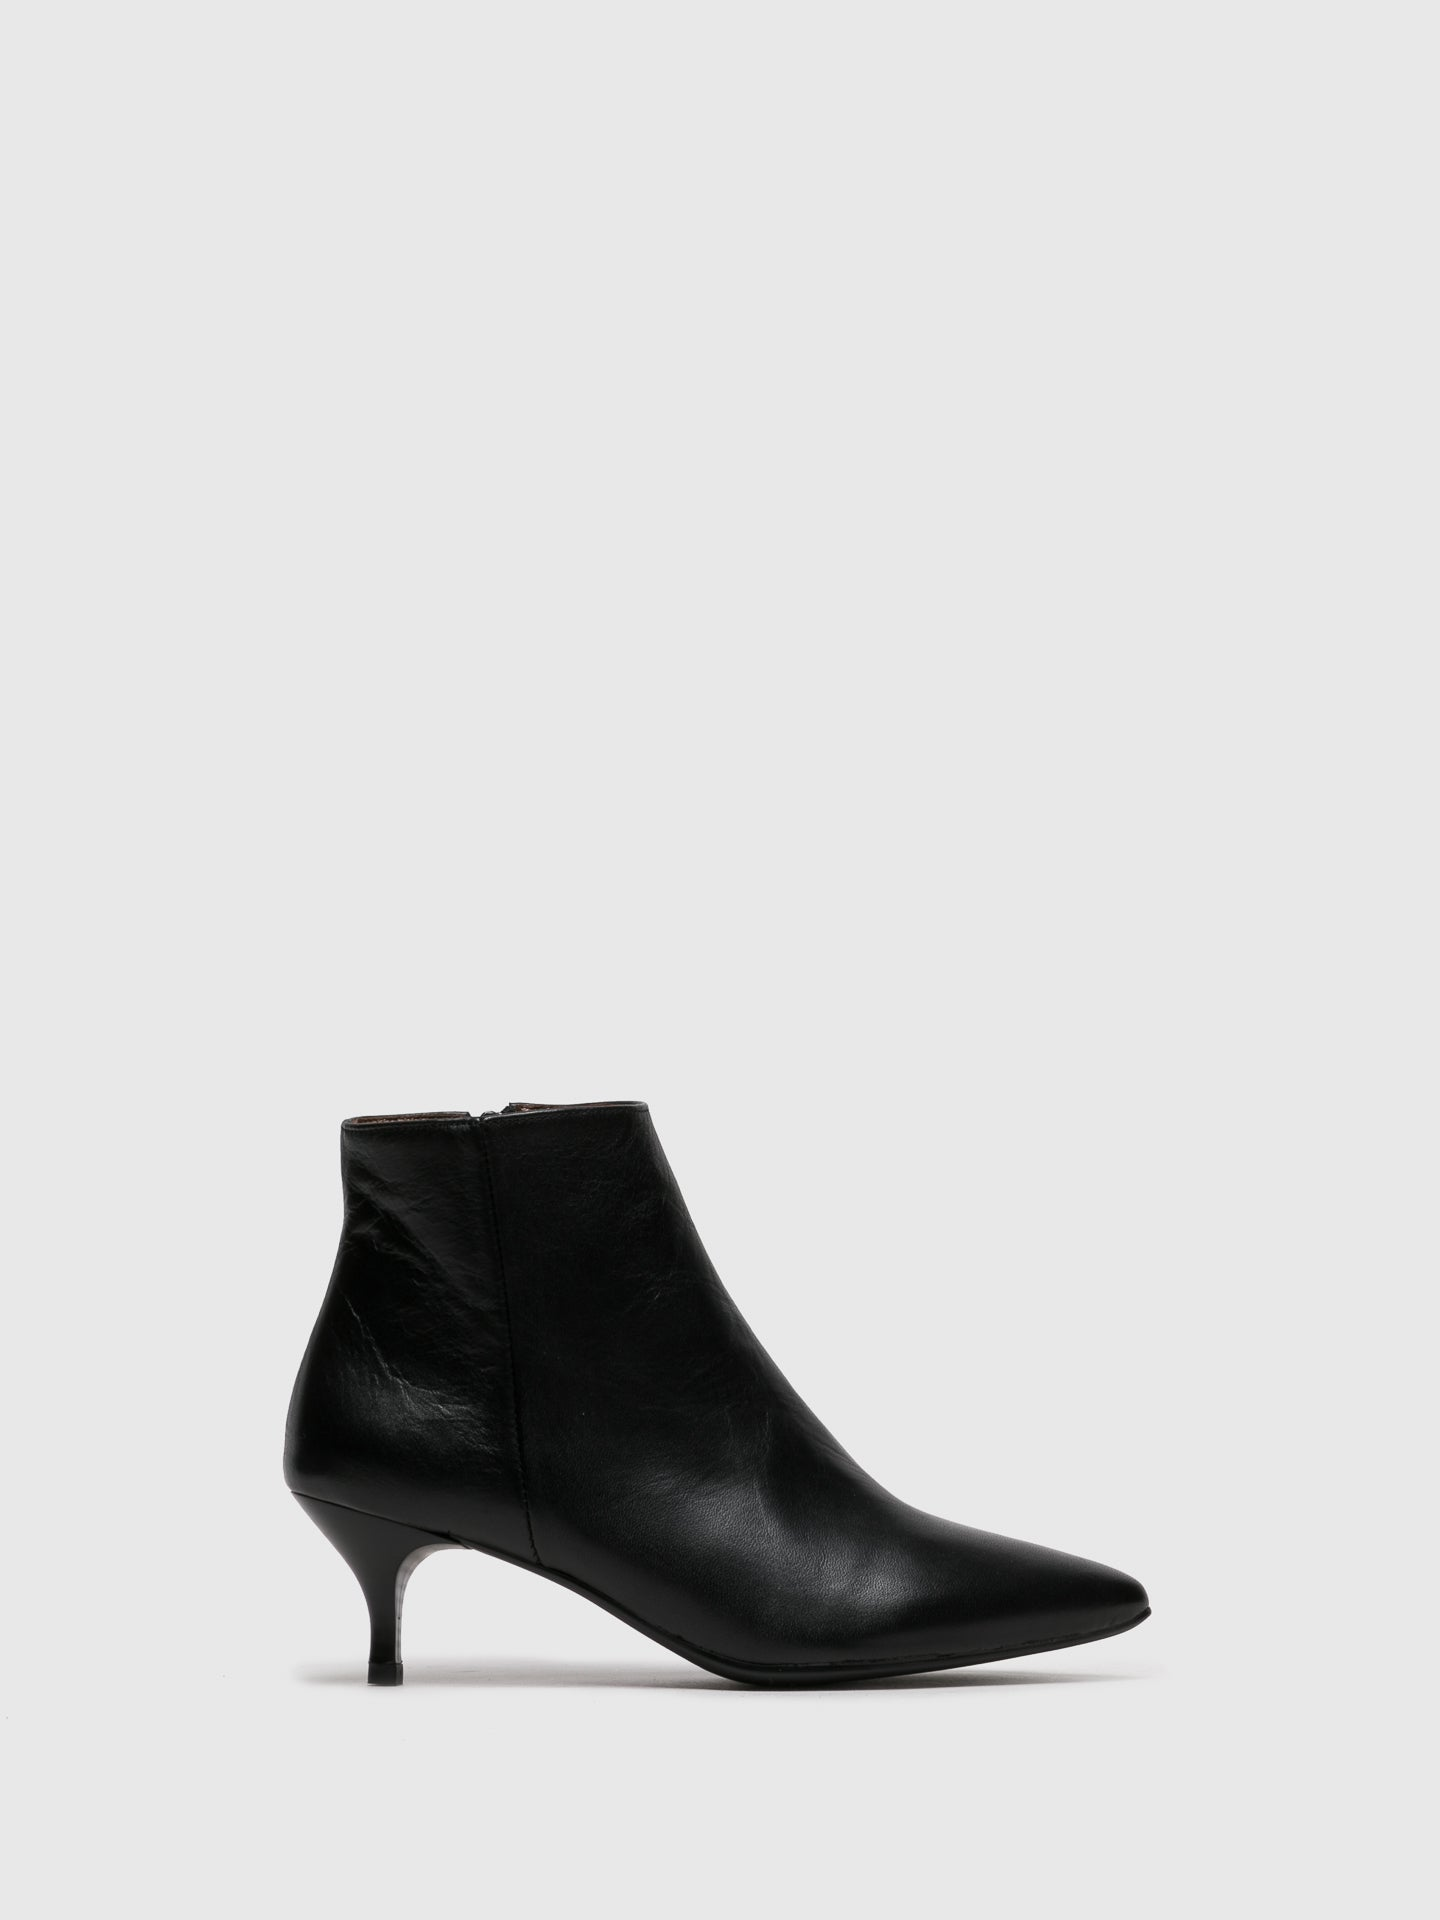 Foreva Black Leather Zip Up Ankle Boots